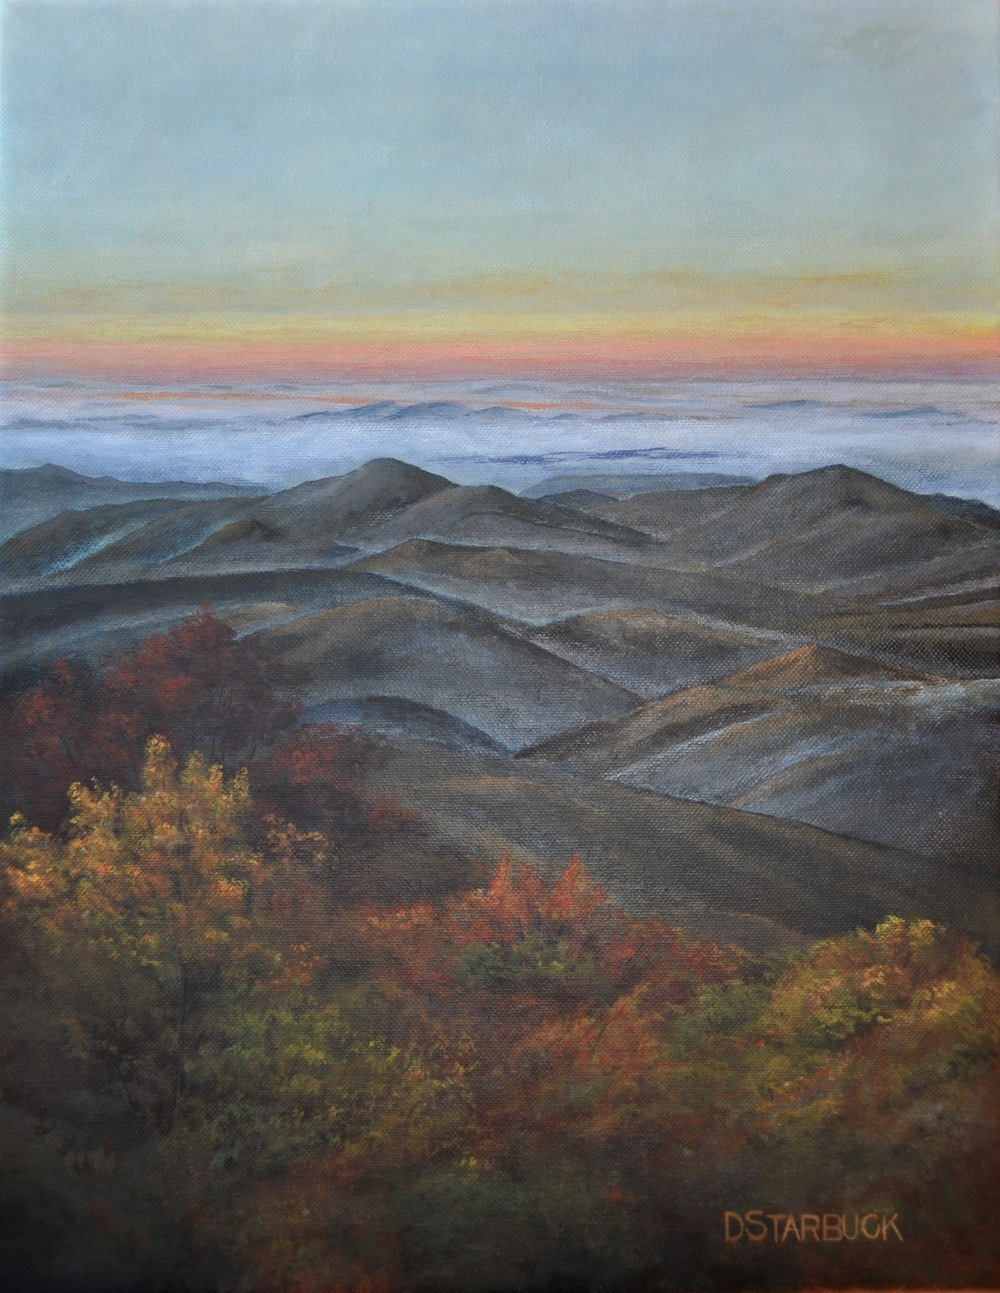 """Morning Glory"" at Stack Creek Overlook, Blue Ridge Parkway, North Carolina  Original: Acrylic on Linen, 14"" x 18"""